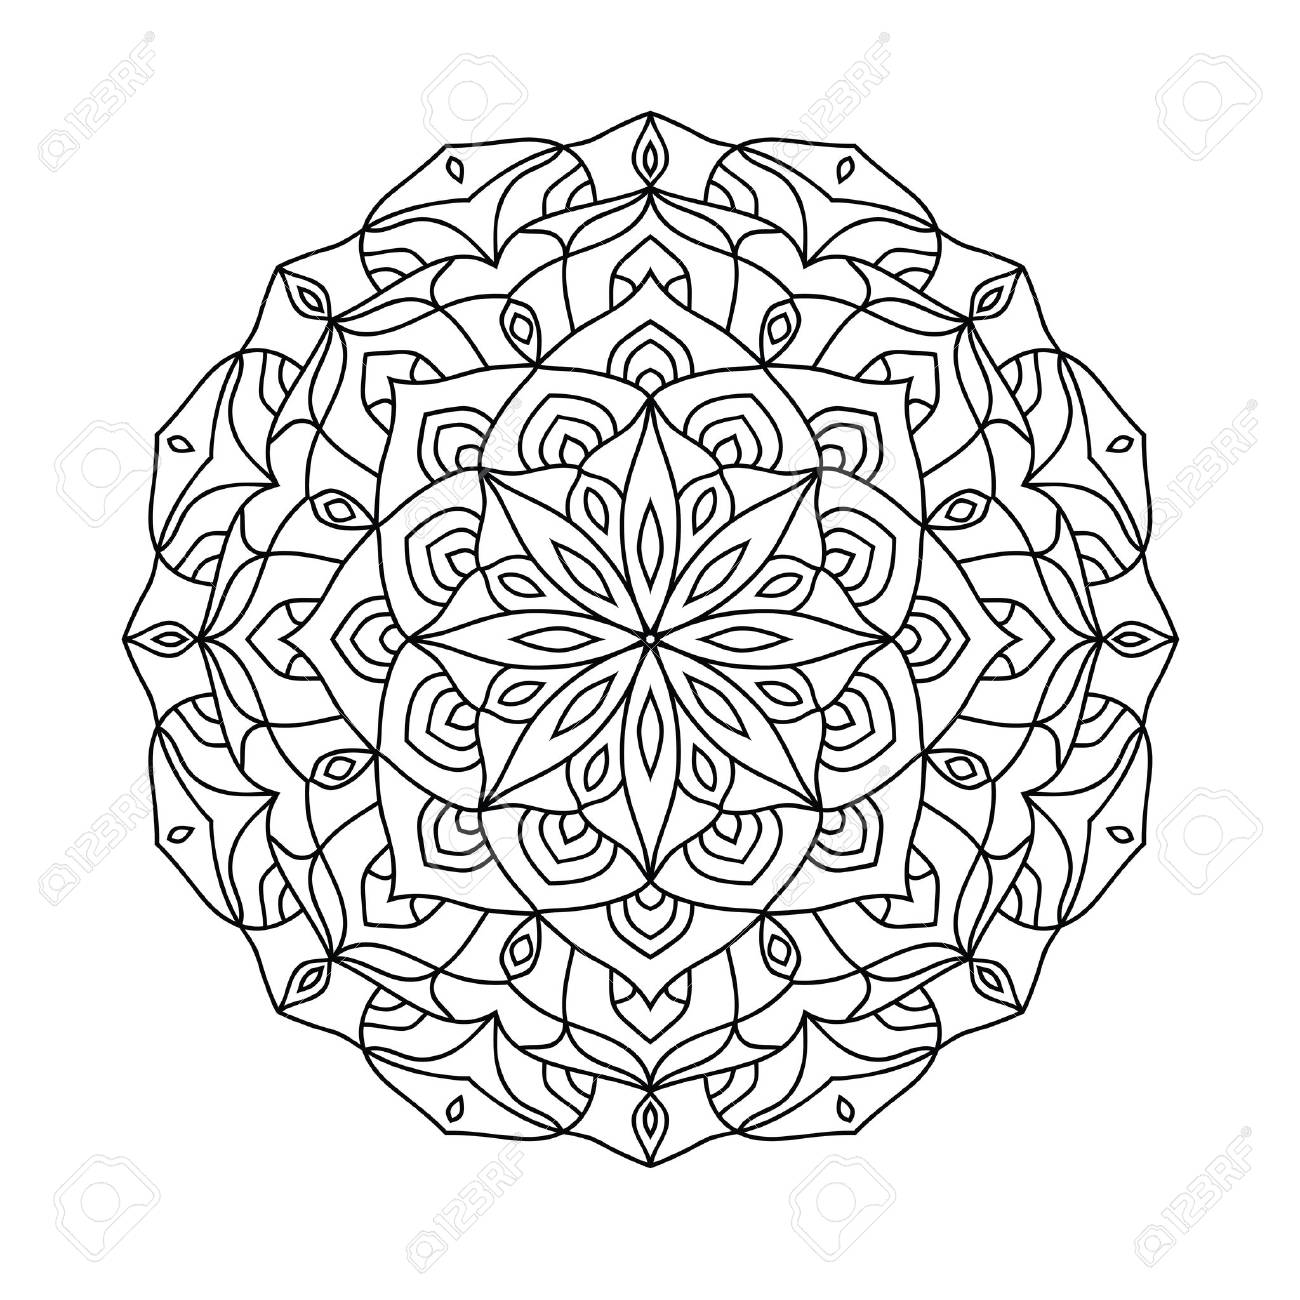 Mandala Coloring Book For Adults. Ethnic Decorative Amulet. Vector ...